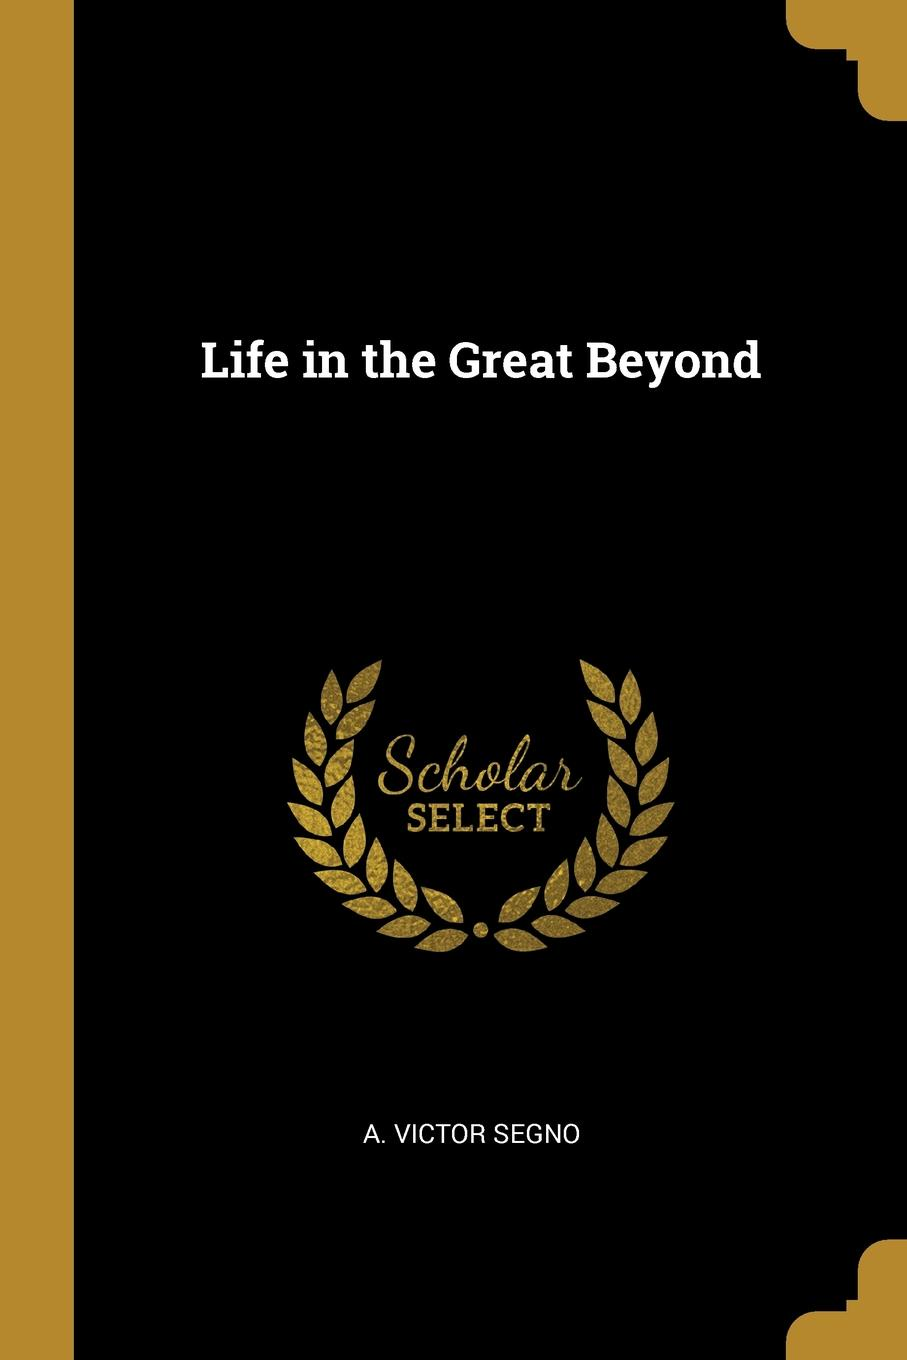 A. Victor Segno. Life in the Great Beyond